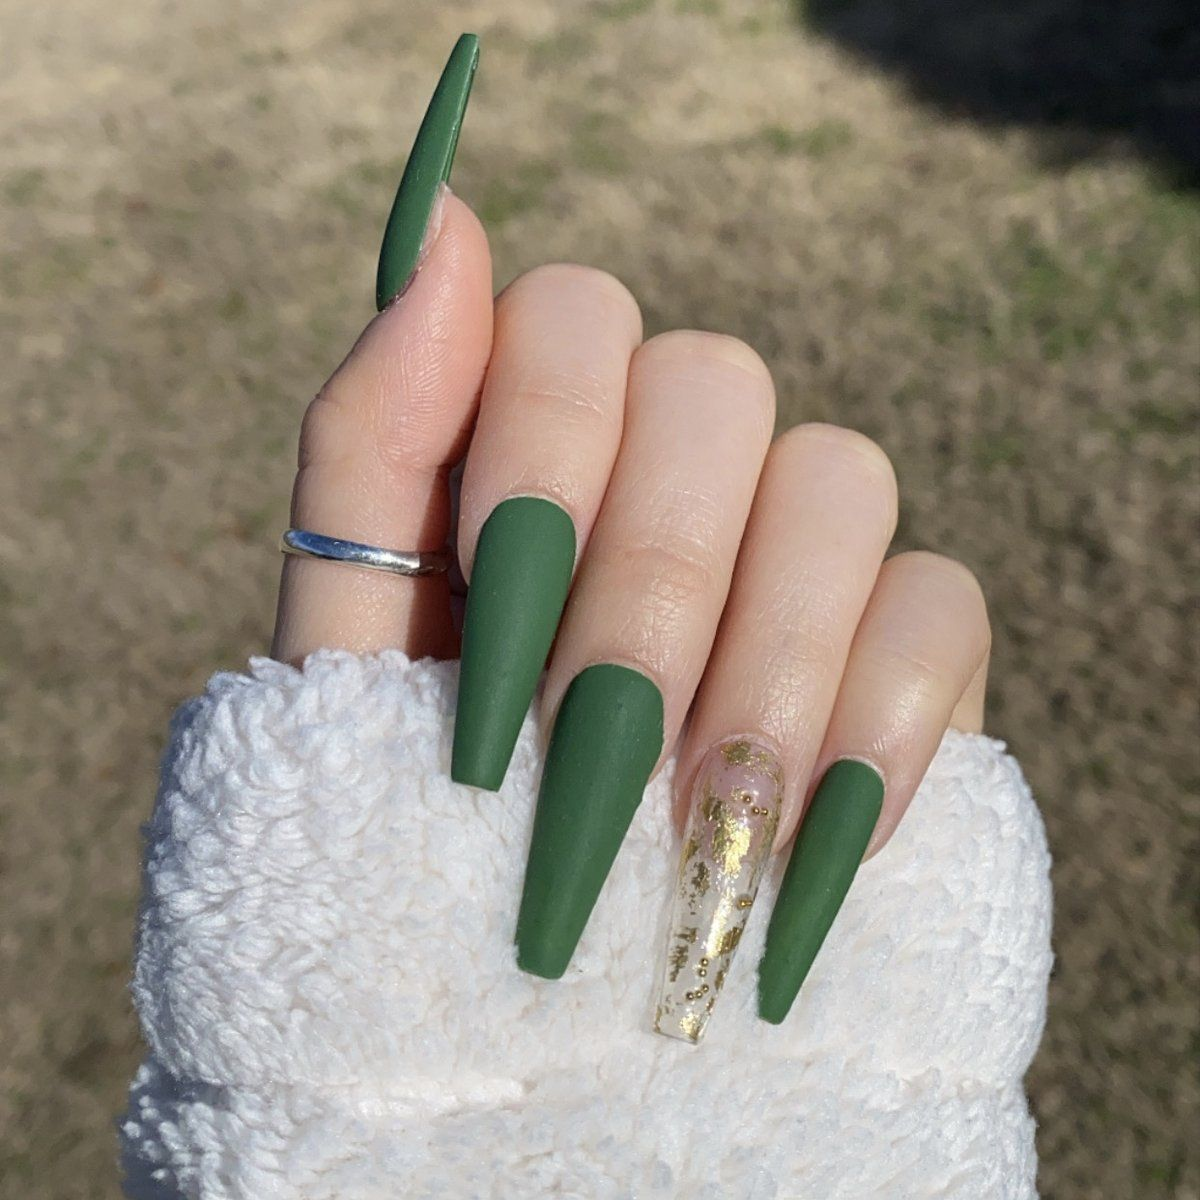 Included Press On Nails Nail Glue Cuticle Pusher Nail File To Find Your Size Refer To The Sizing C In 2020 Gold Acrylic Nails Green Acrylic Nails Long Acrylic Nails